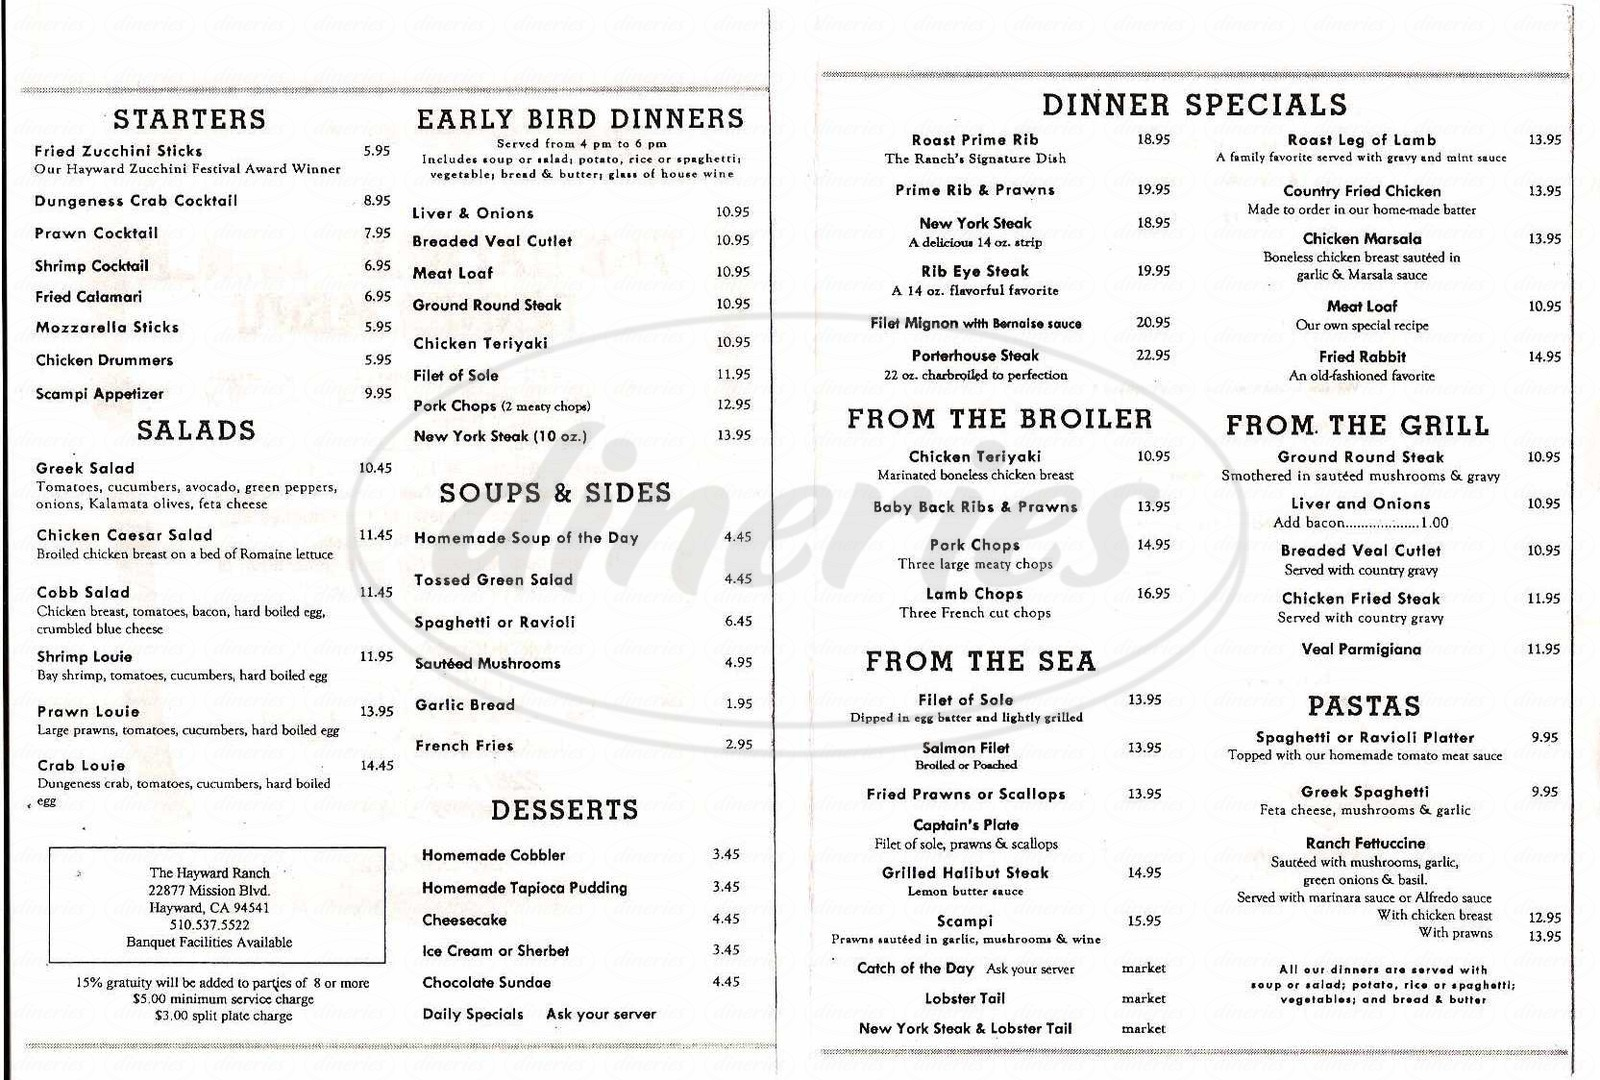 menu for The Hayward Ranch